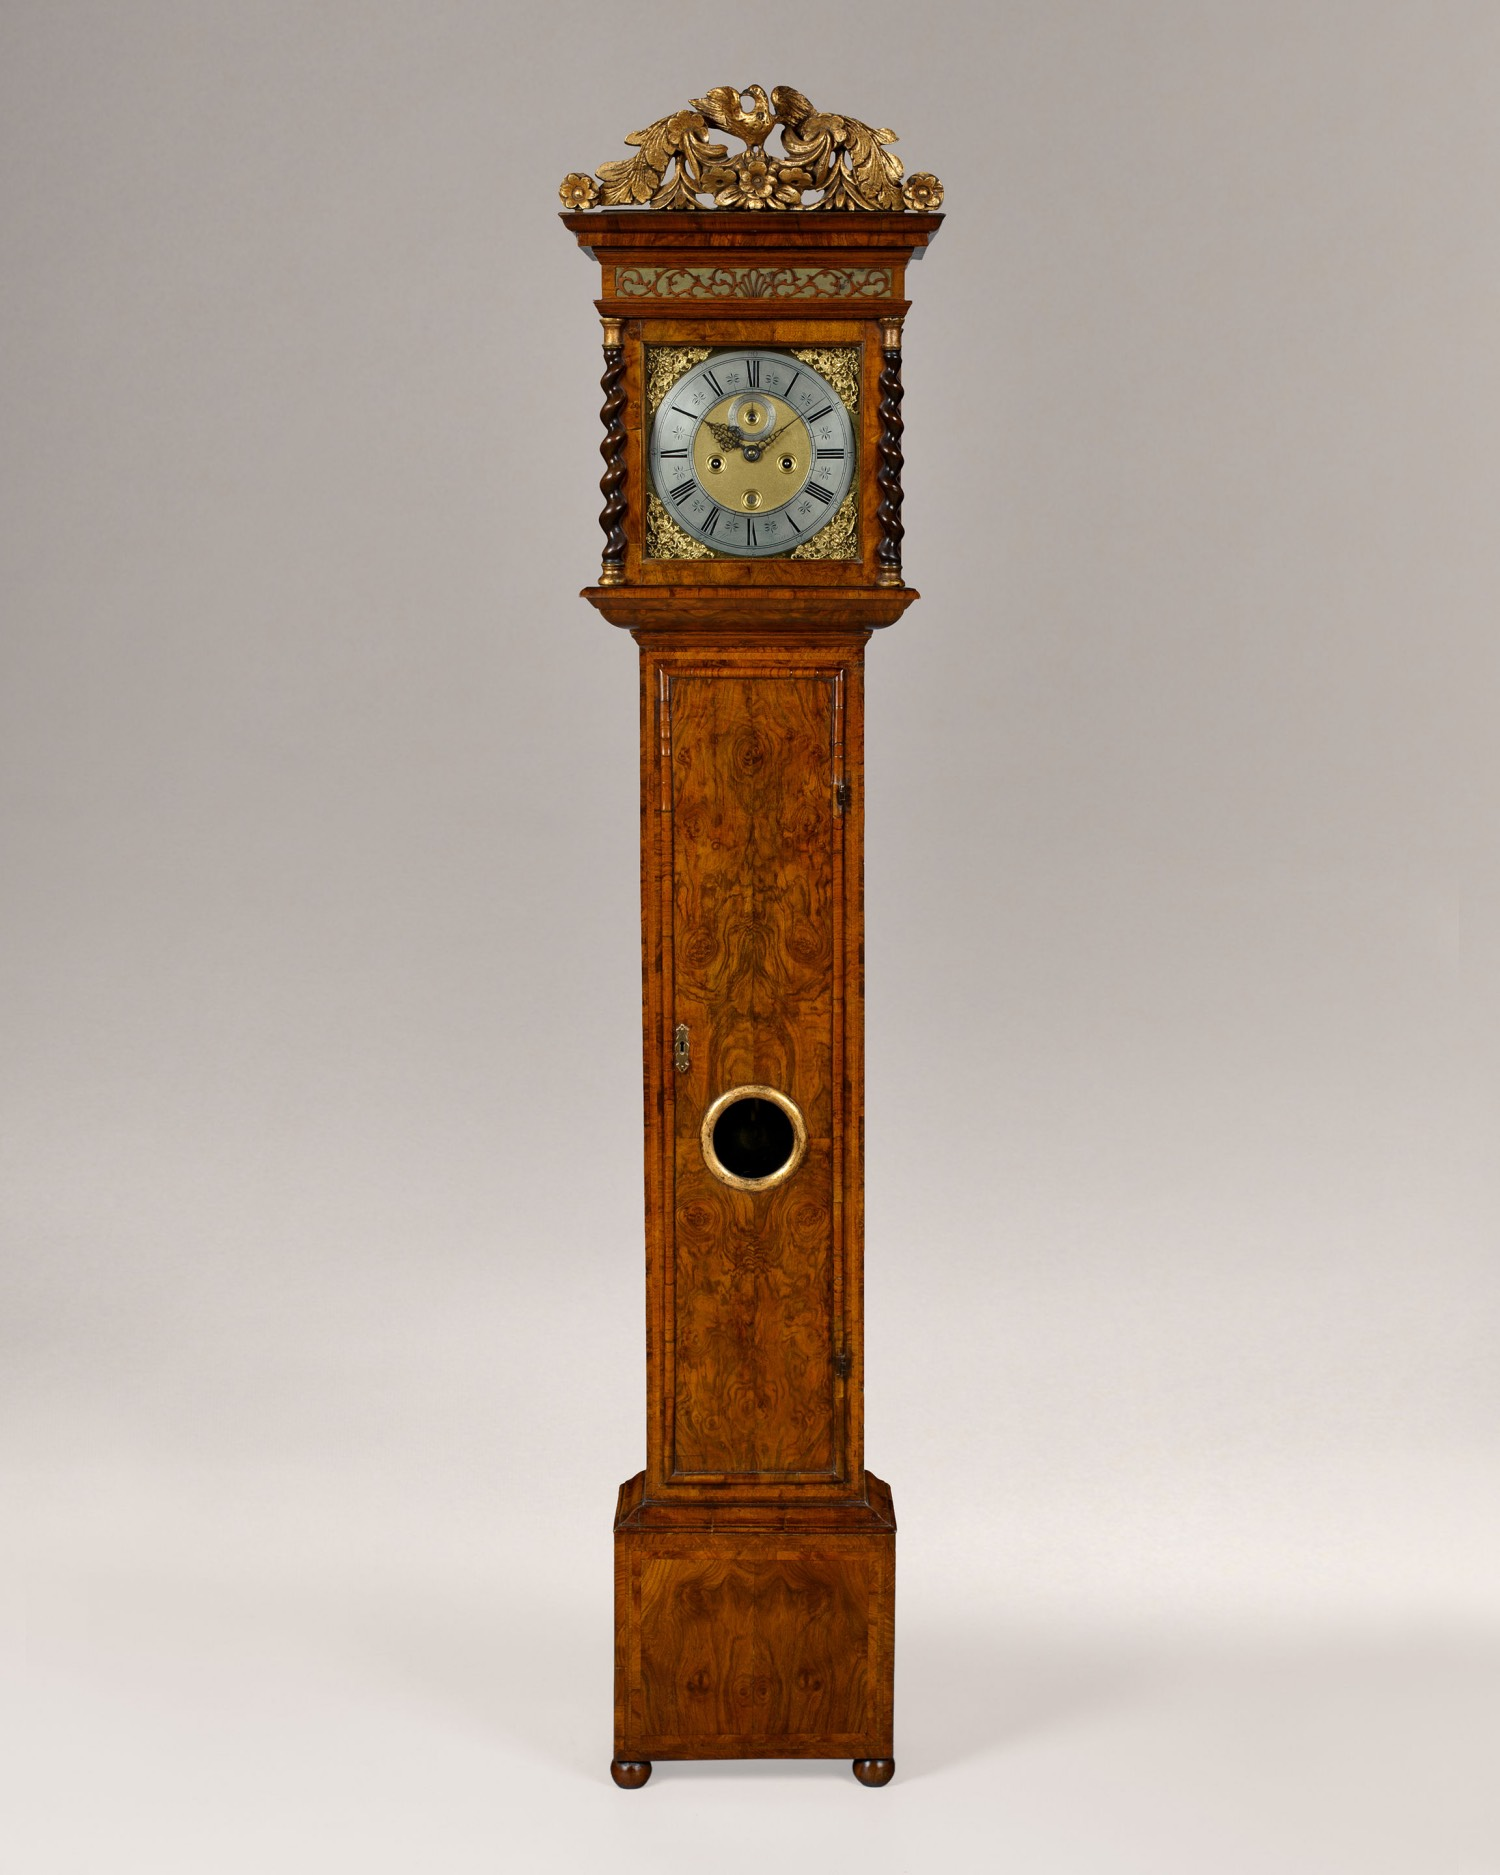 JOSEPH WINDMILLS. A RARE DOCUMENTED WILLIAM III PERIOD 8-DAY WALNUT LONGCASE CLOCK